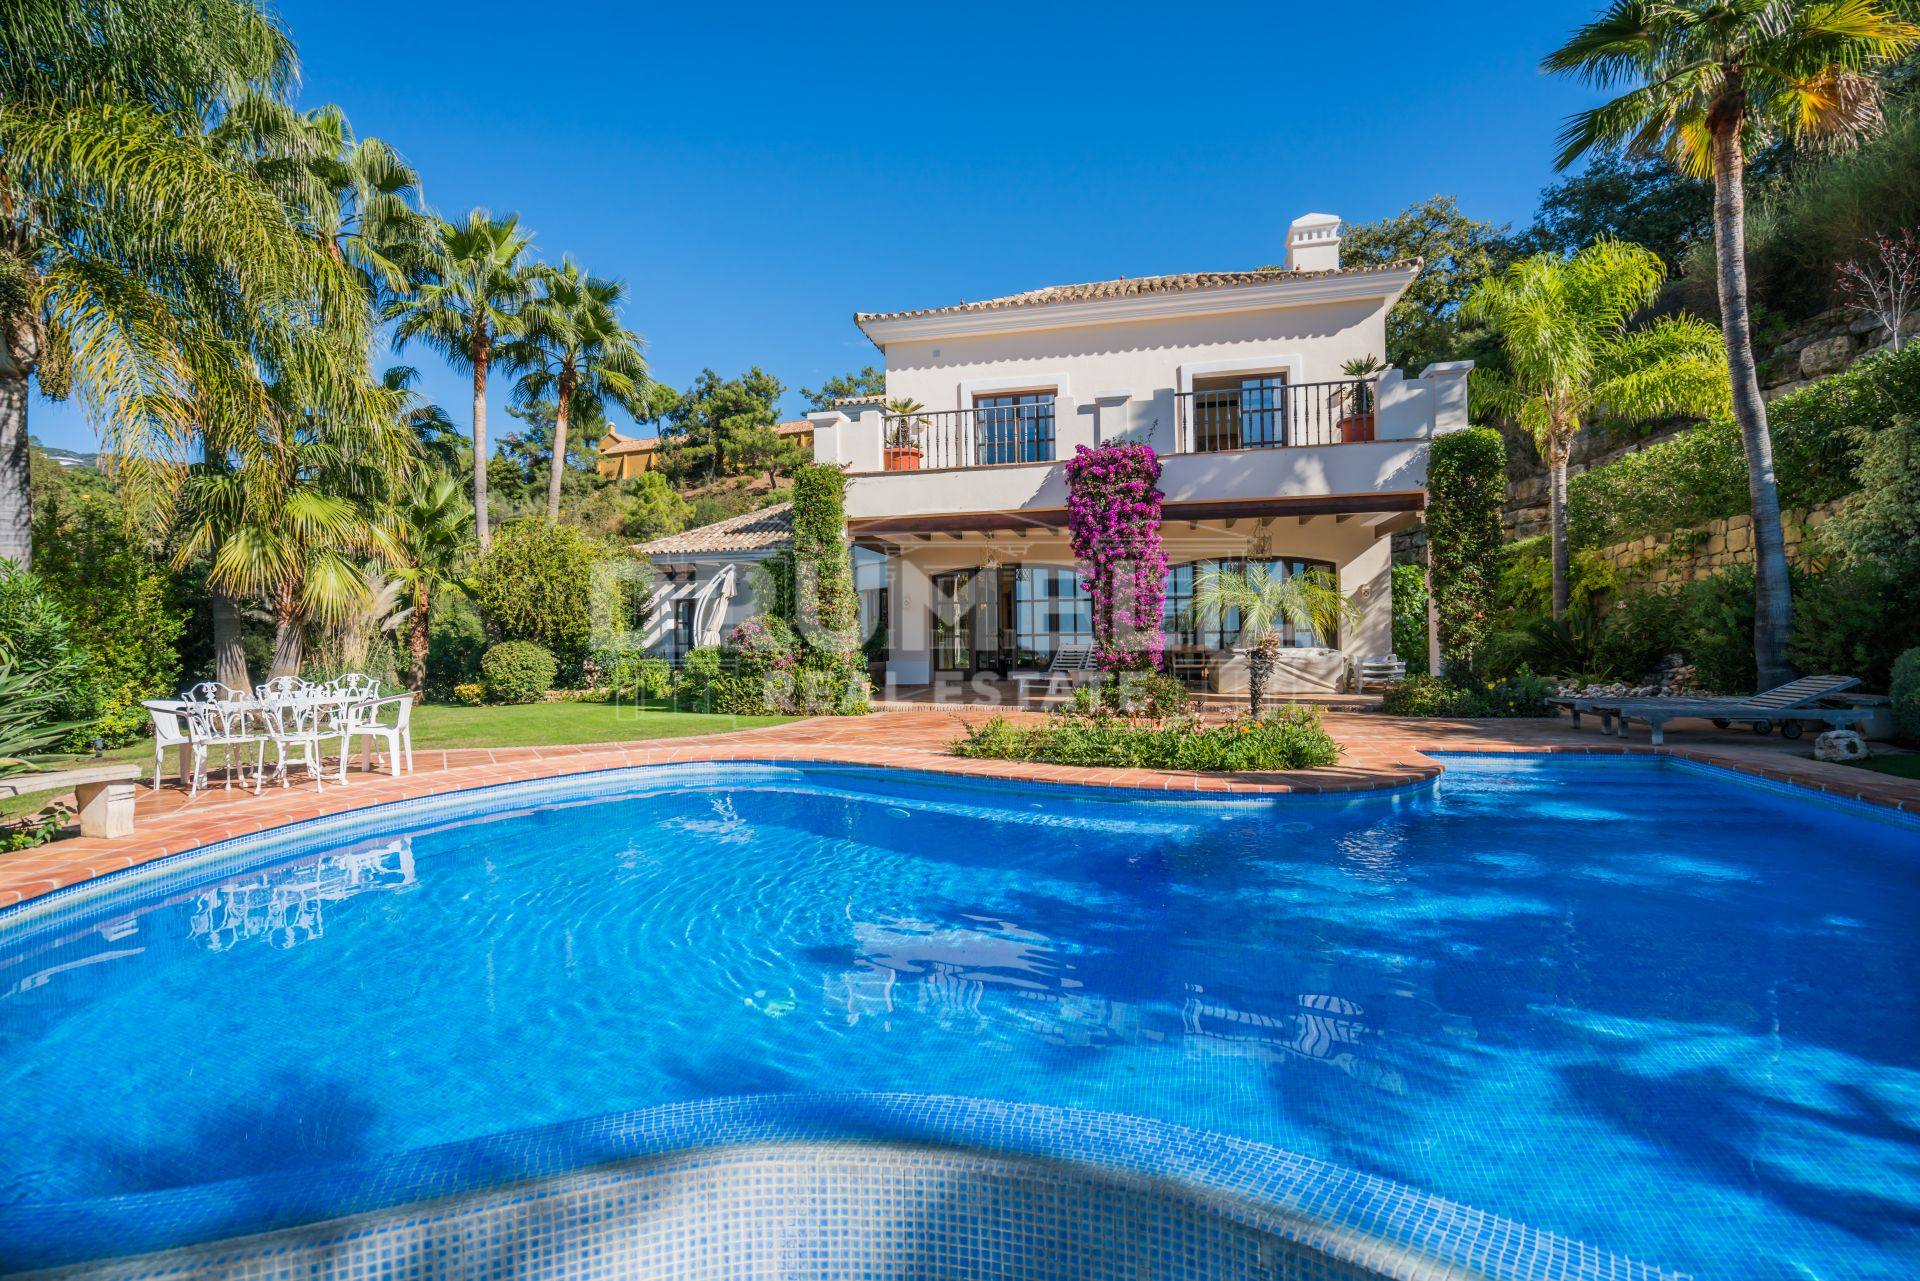 Benahavis, Magnificent Classic Mediterranean Luxury Villa, La Zagaleta Golf & Country Club, Benahavis.